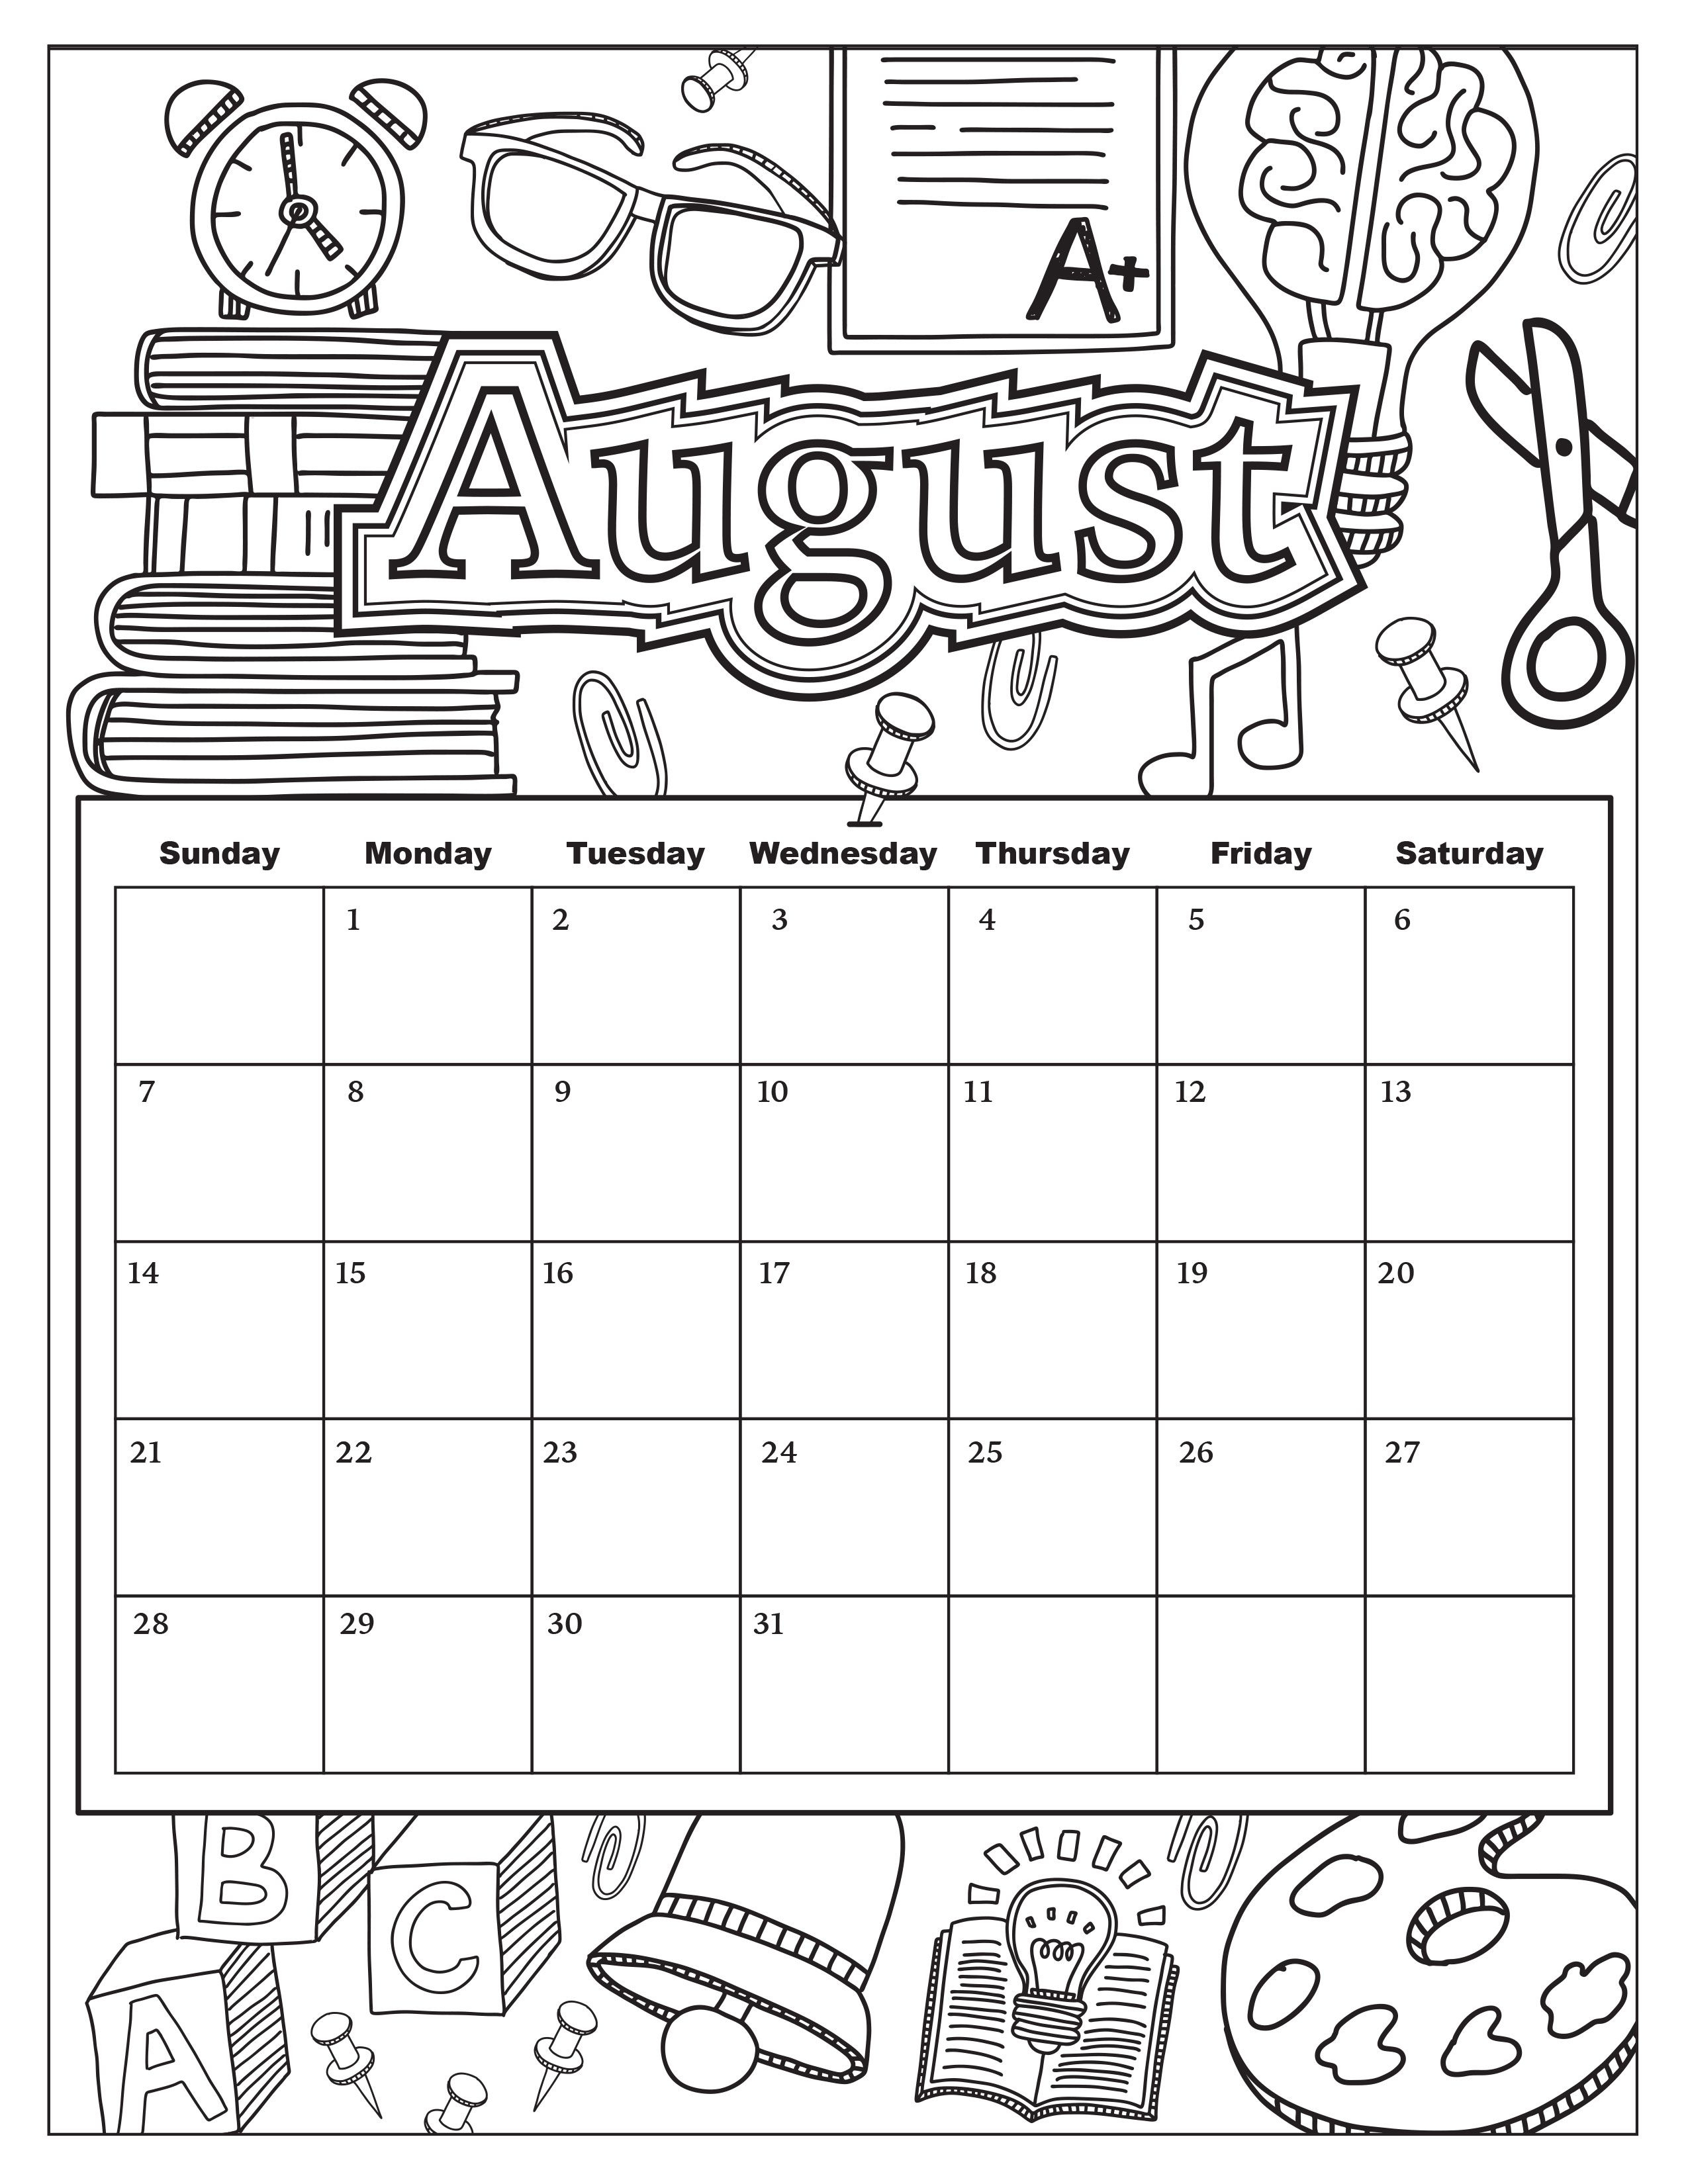 Free Download: Coloring Pages From Popular Adult Coloring Books within Coloring Pages October Calendar 2019 Adults